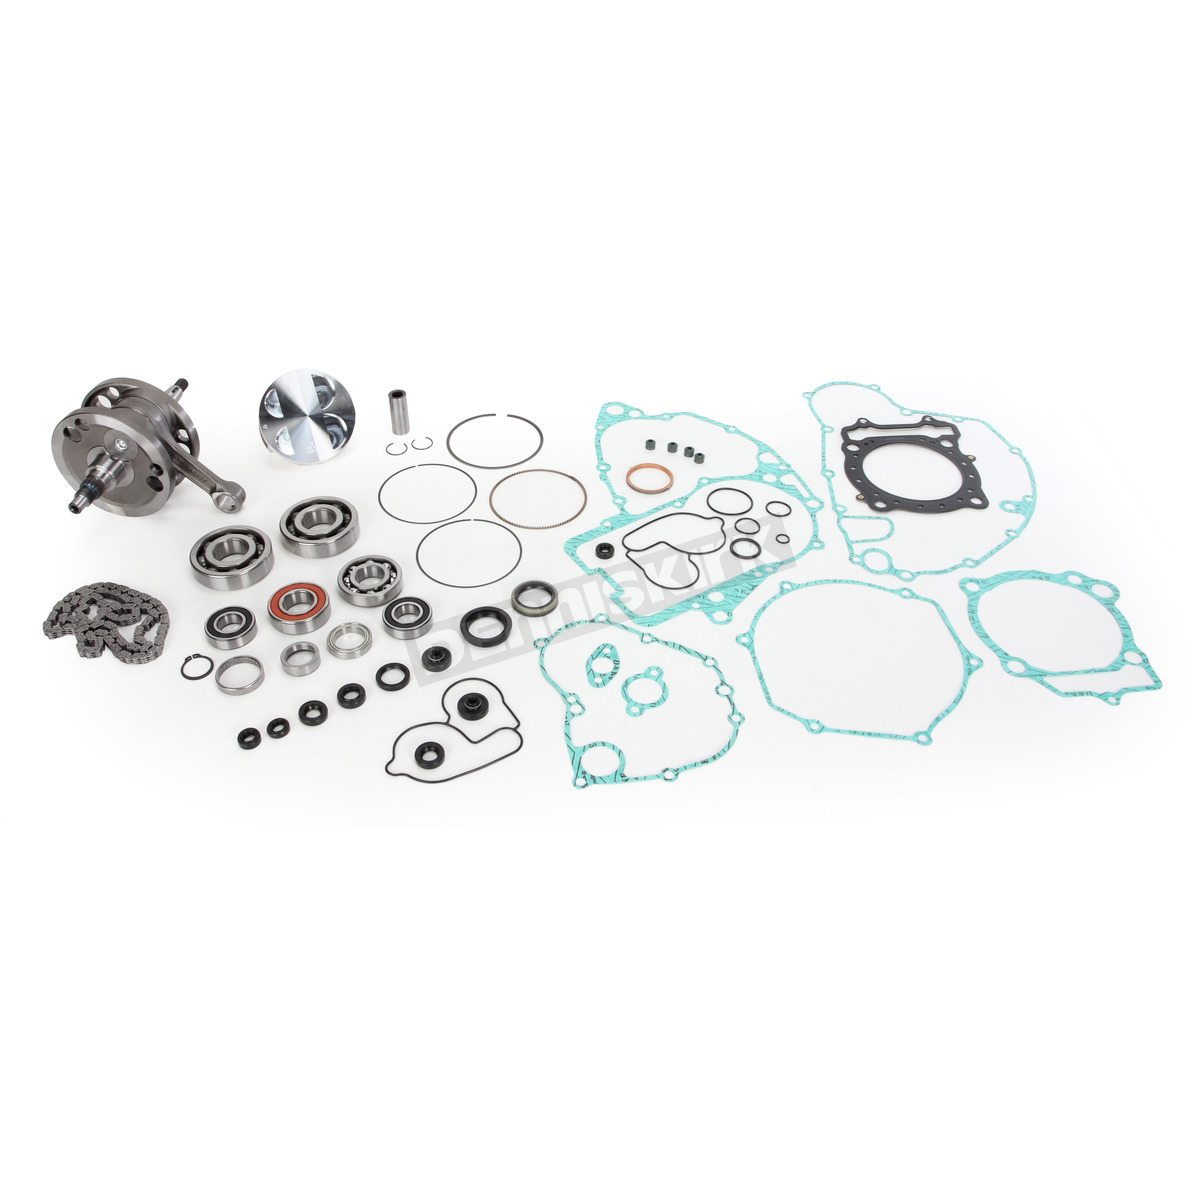 50cc Scooter Vacuum Lines in addition Honda Ruckus Wiring Diagram furthermore 49cc Ignition Coil Buy Online also 110cc Atv Engine Diagram additionally Product support. on 49cc scooter carburetor diagram